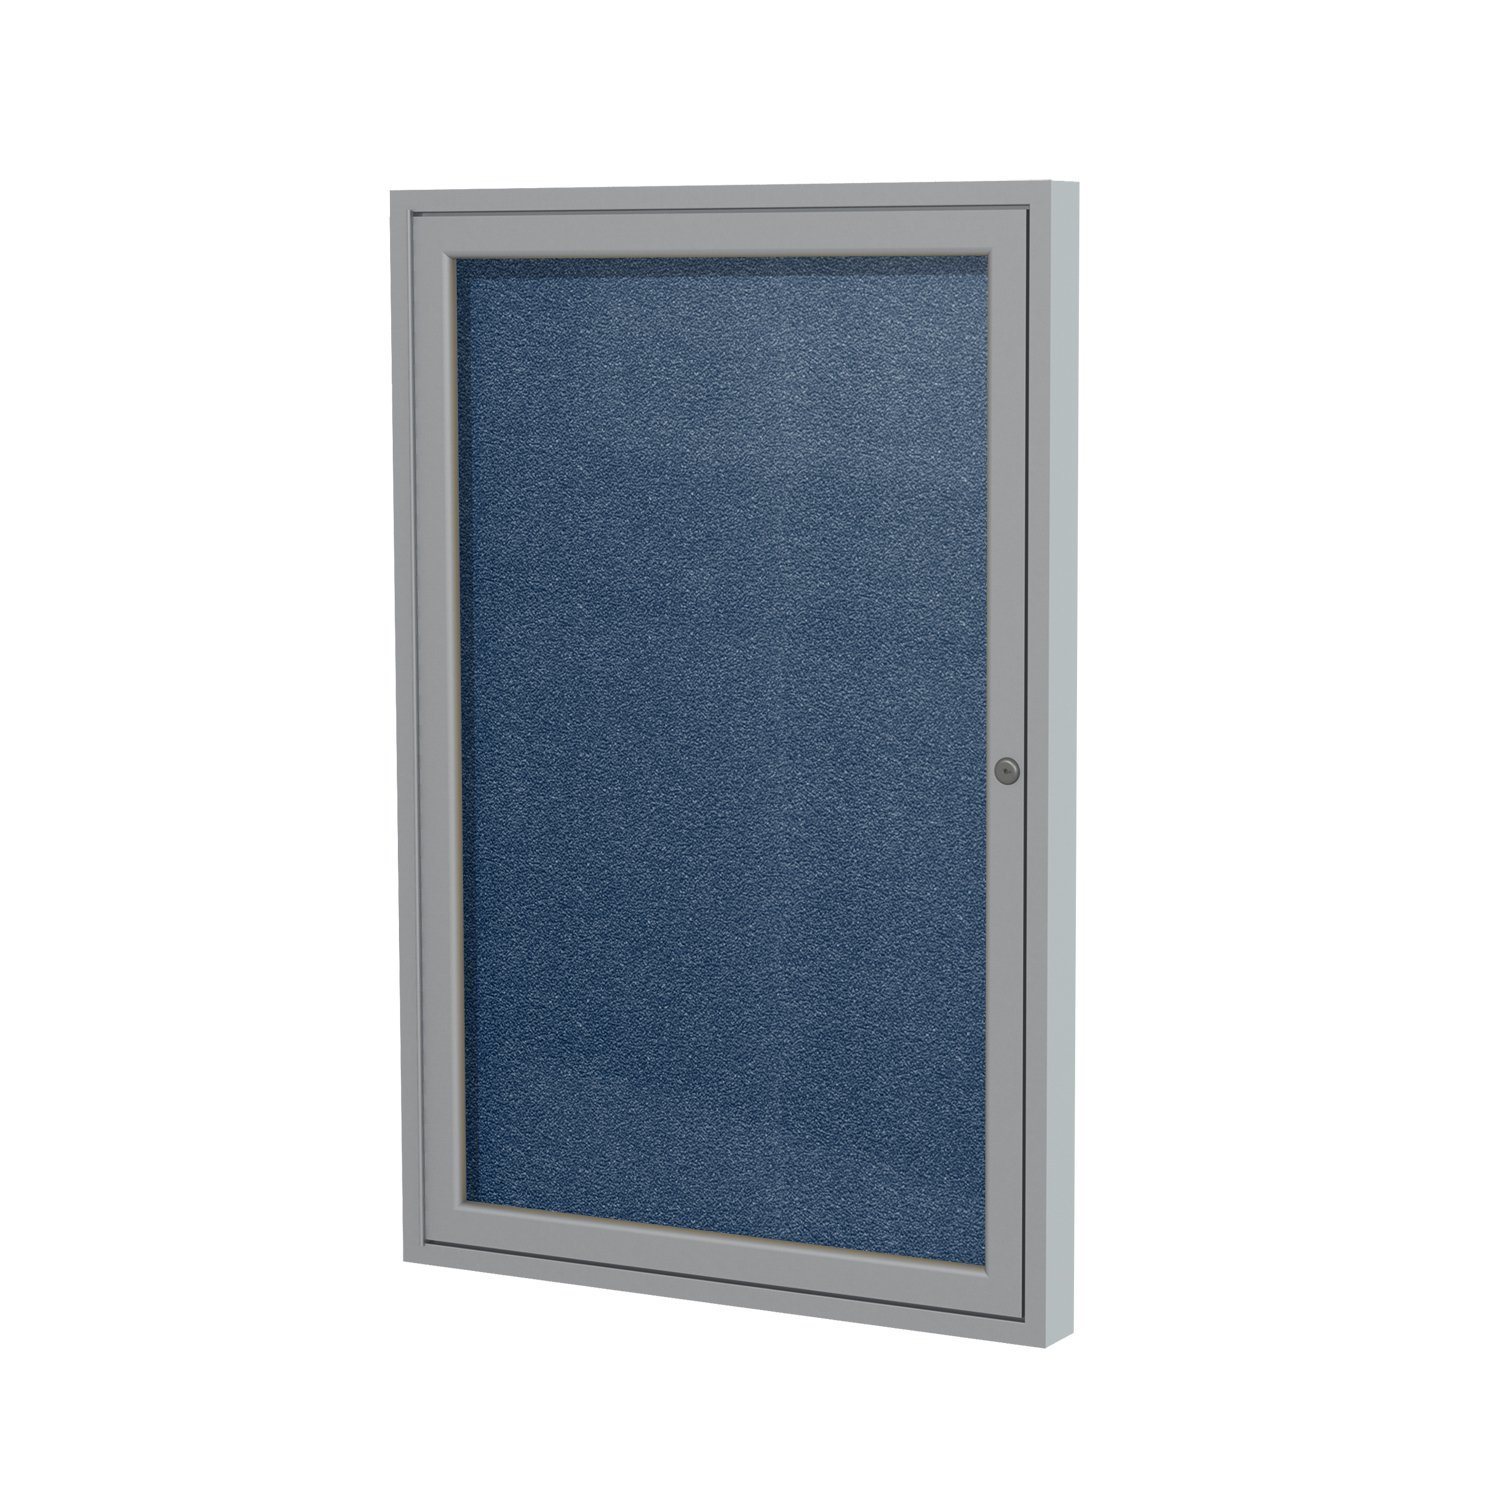 1 Door Outdoor Enclosed Bulletin Board Size: 3' H x 3' W, Frame Finish: Satin, Surface Color: Navy